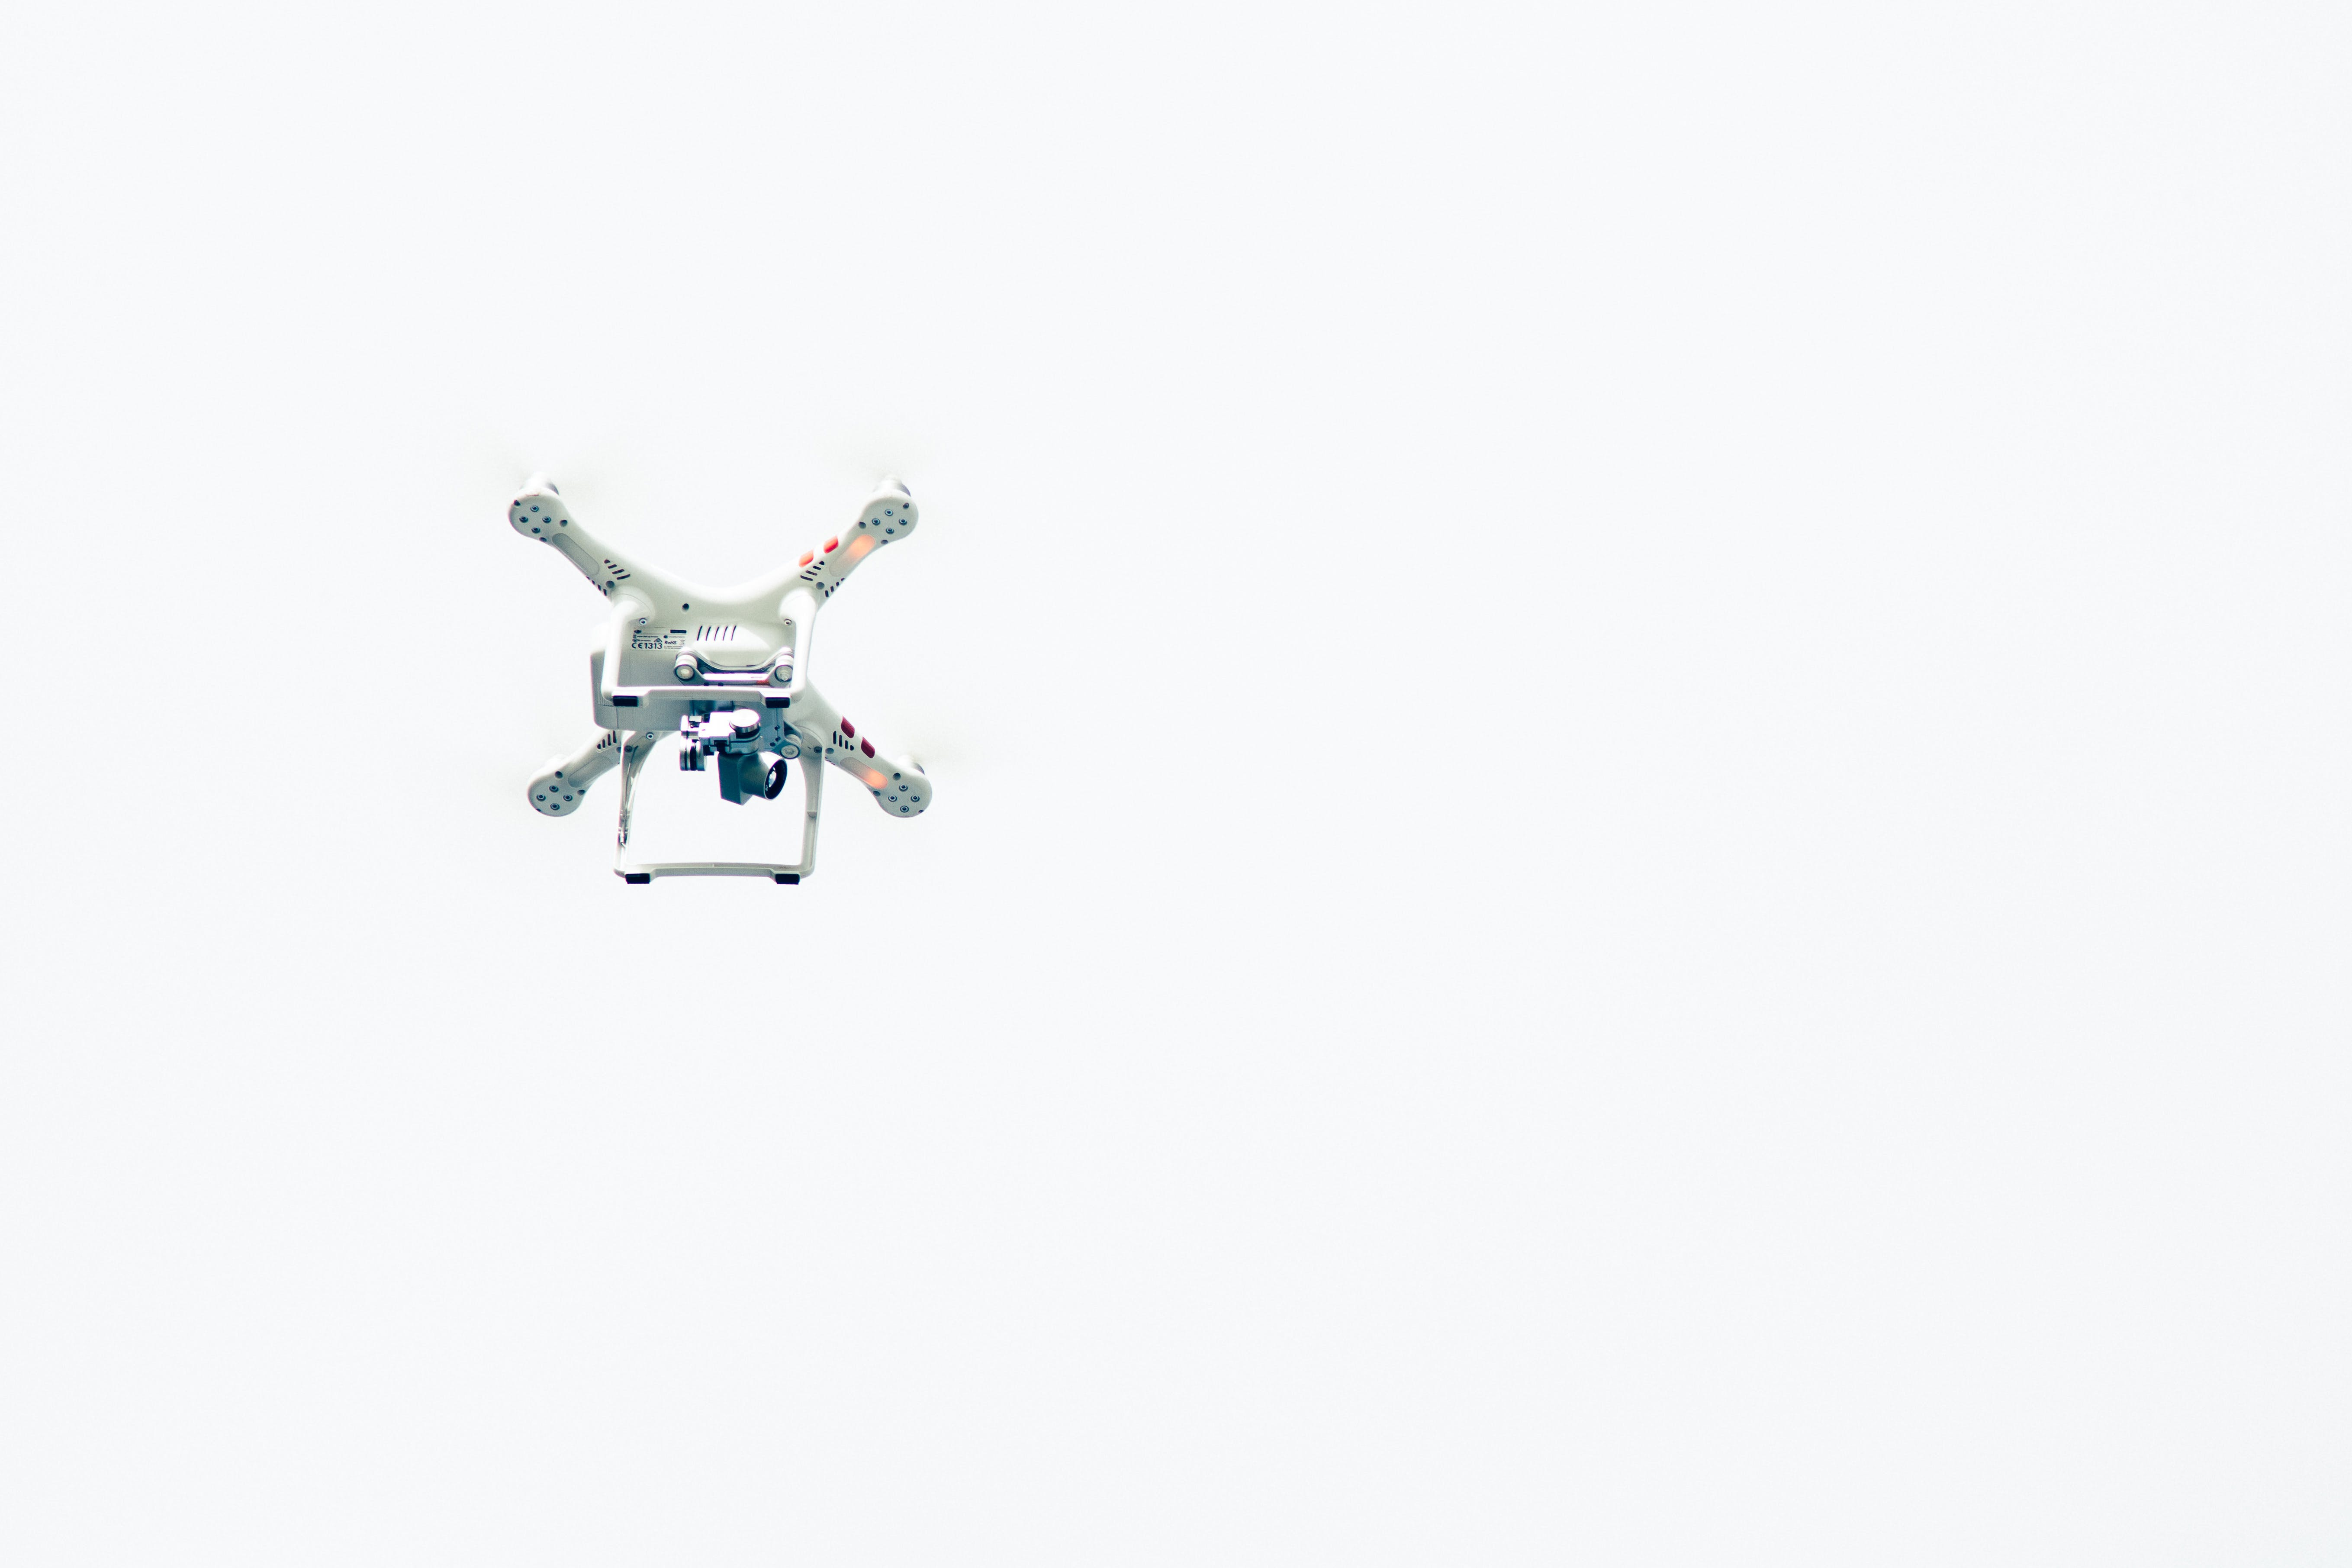 White Quadcopter